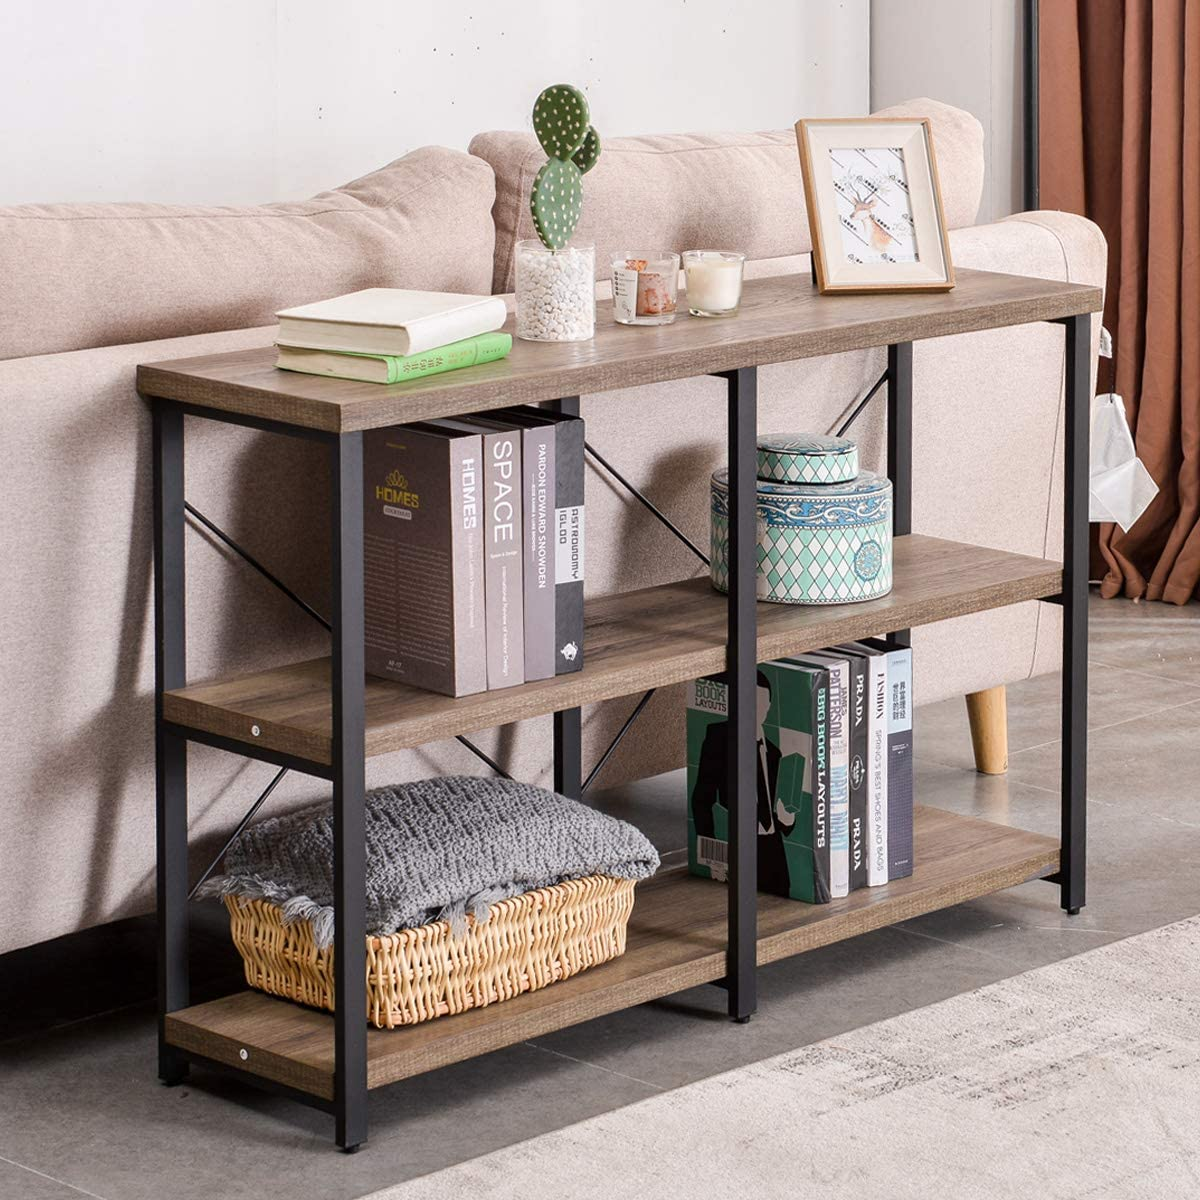 GRELO HOME Rustic Console Table for Entryway, Industrial Sofa/Entry Table with Storage Open Bookshelf, 47 Inch Gray Oak